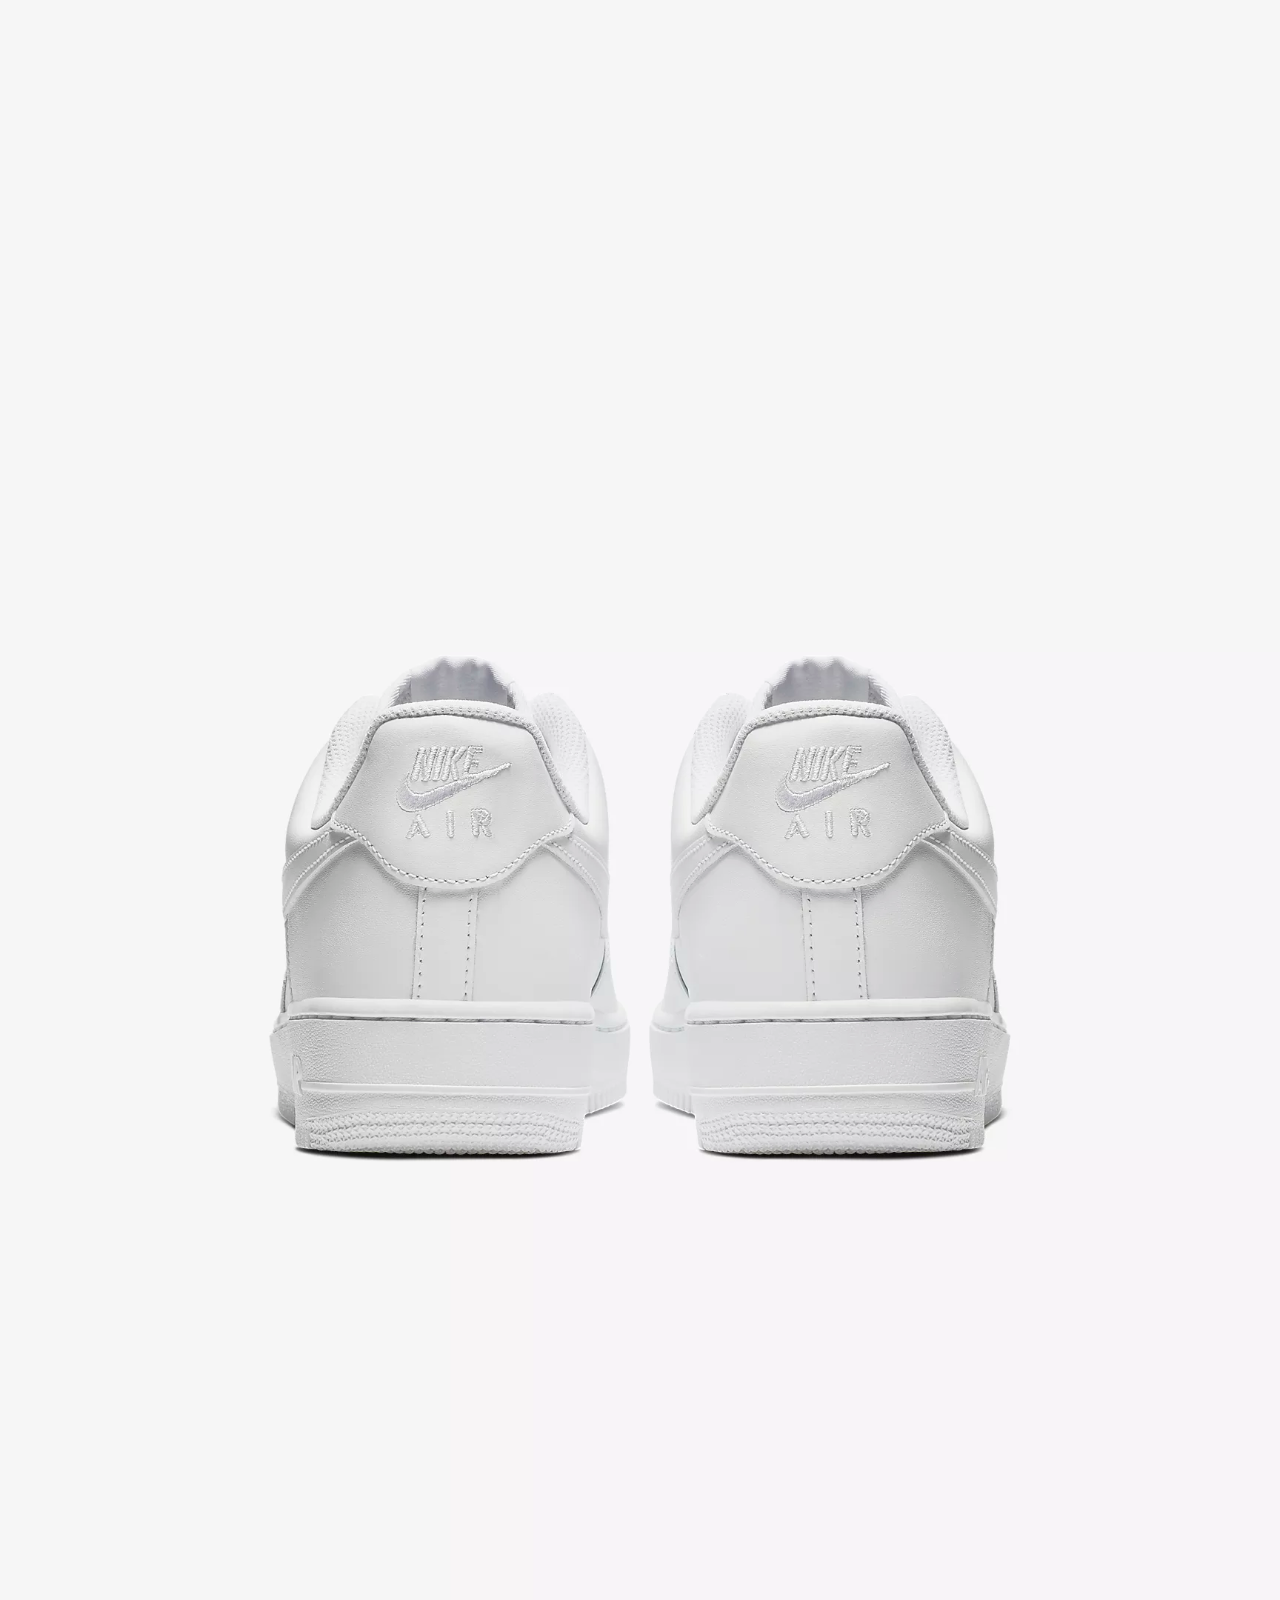 Nike Air Force 1 '07 Trainers White / Shoes / Leather Trainers image 5